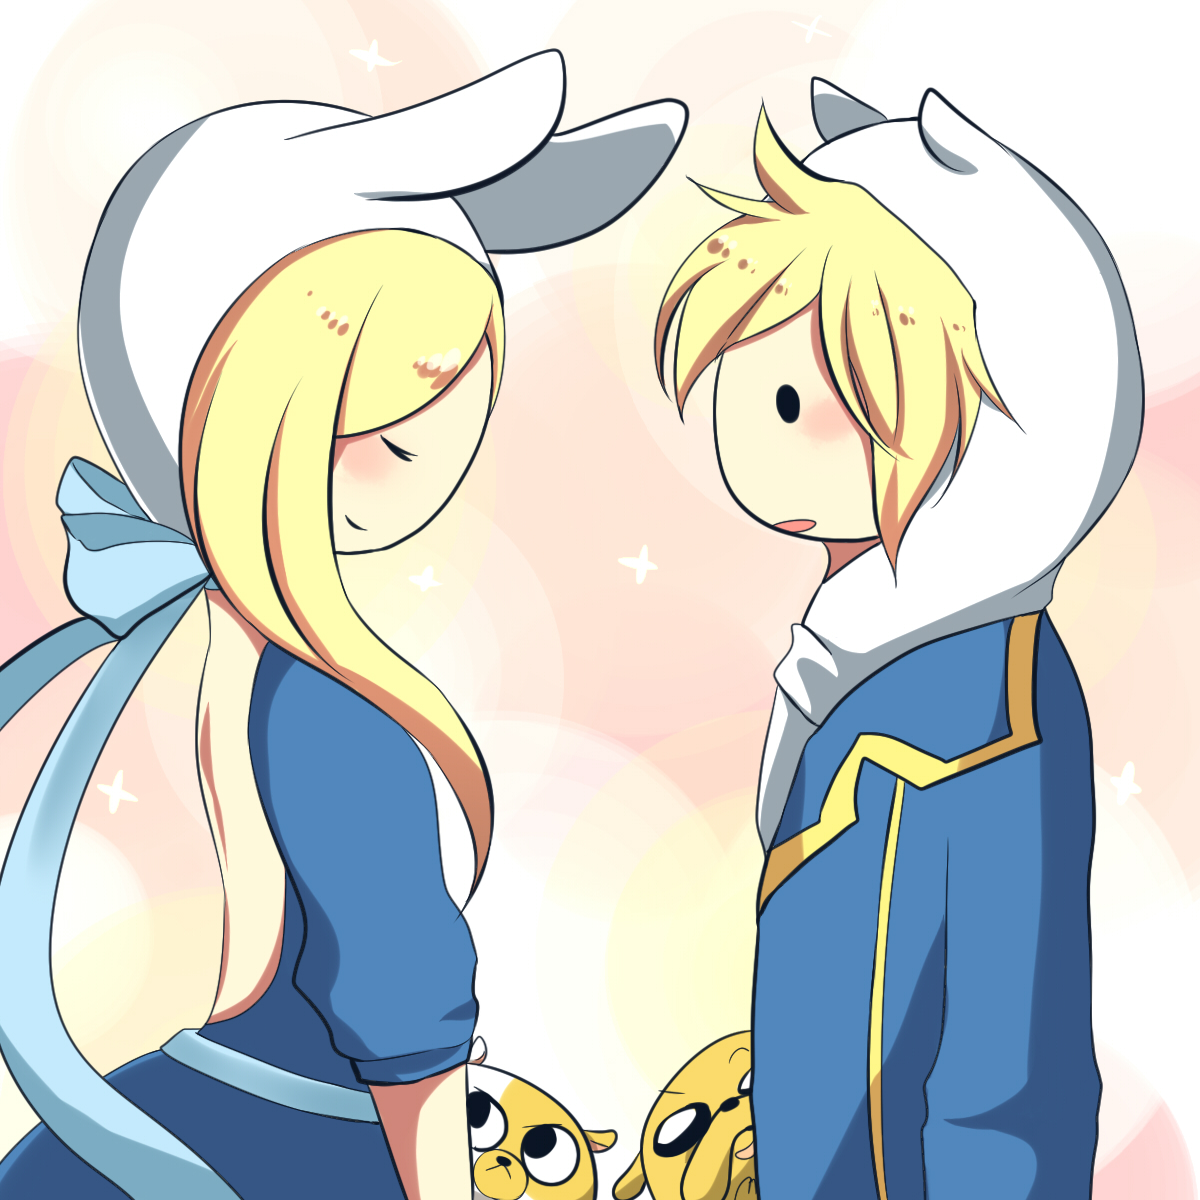 finn x fionna fanfiction - photo #9